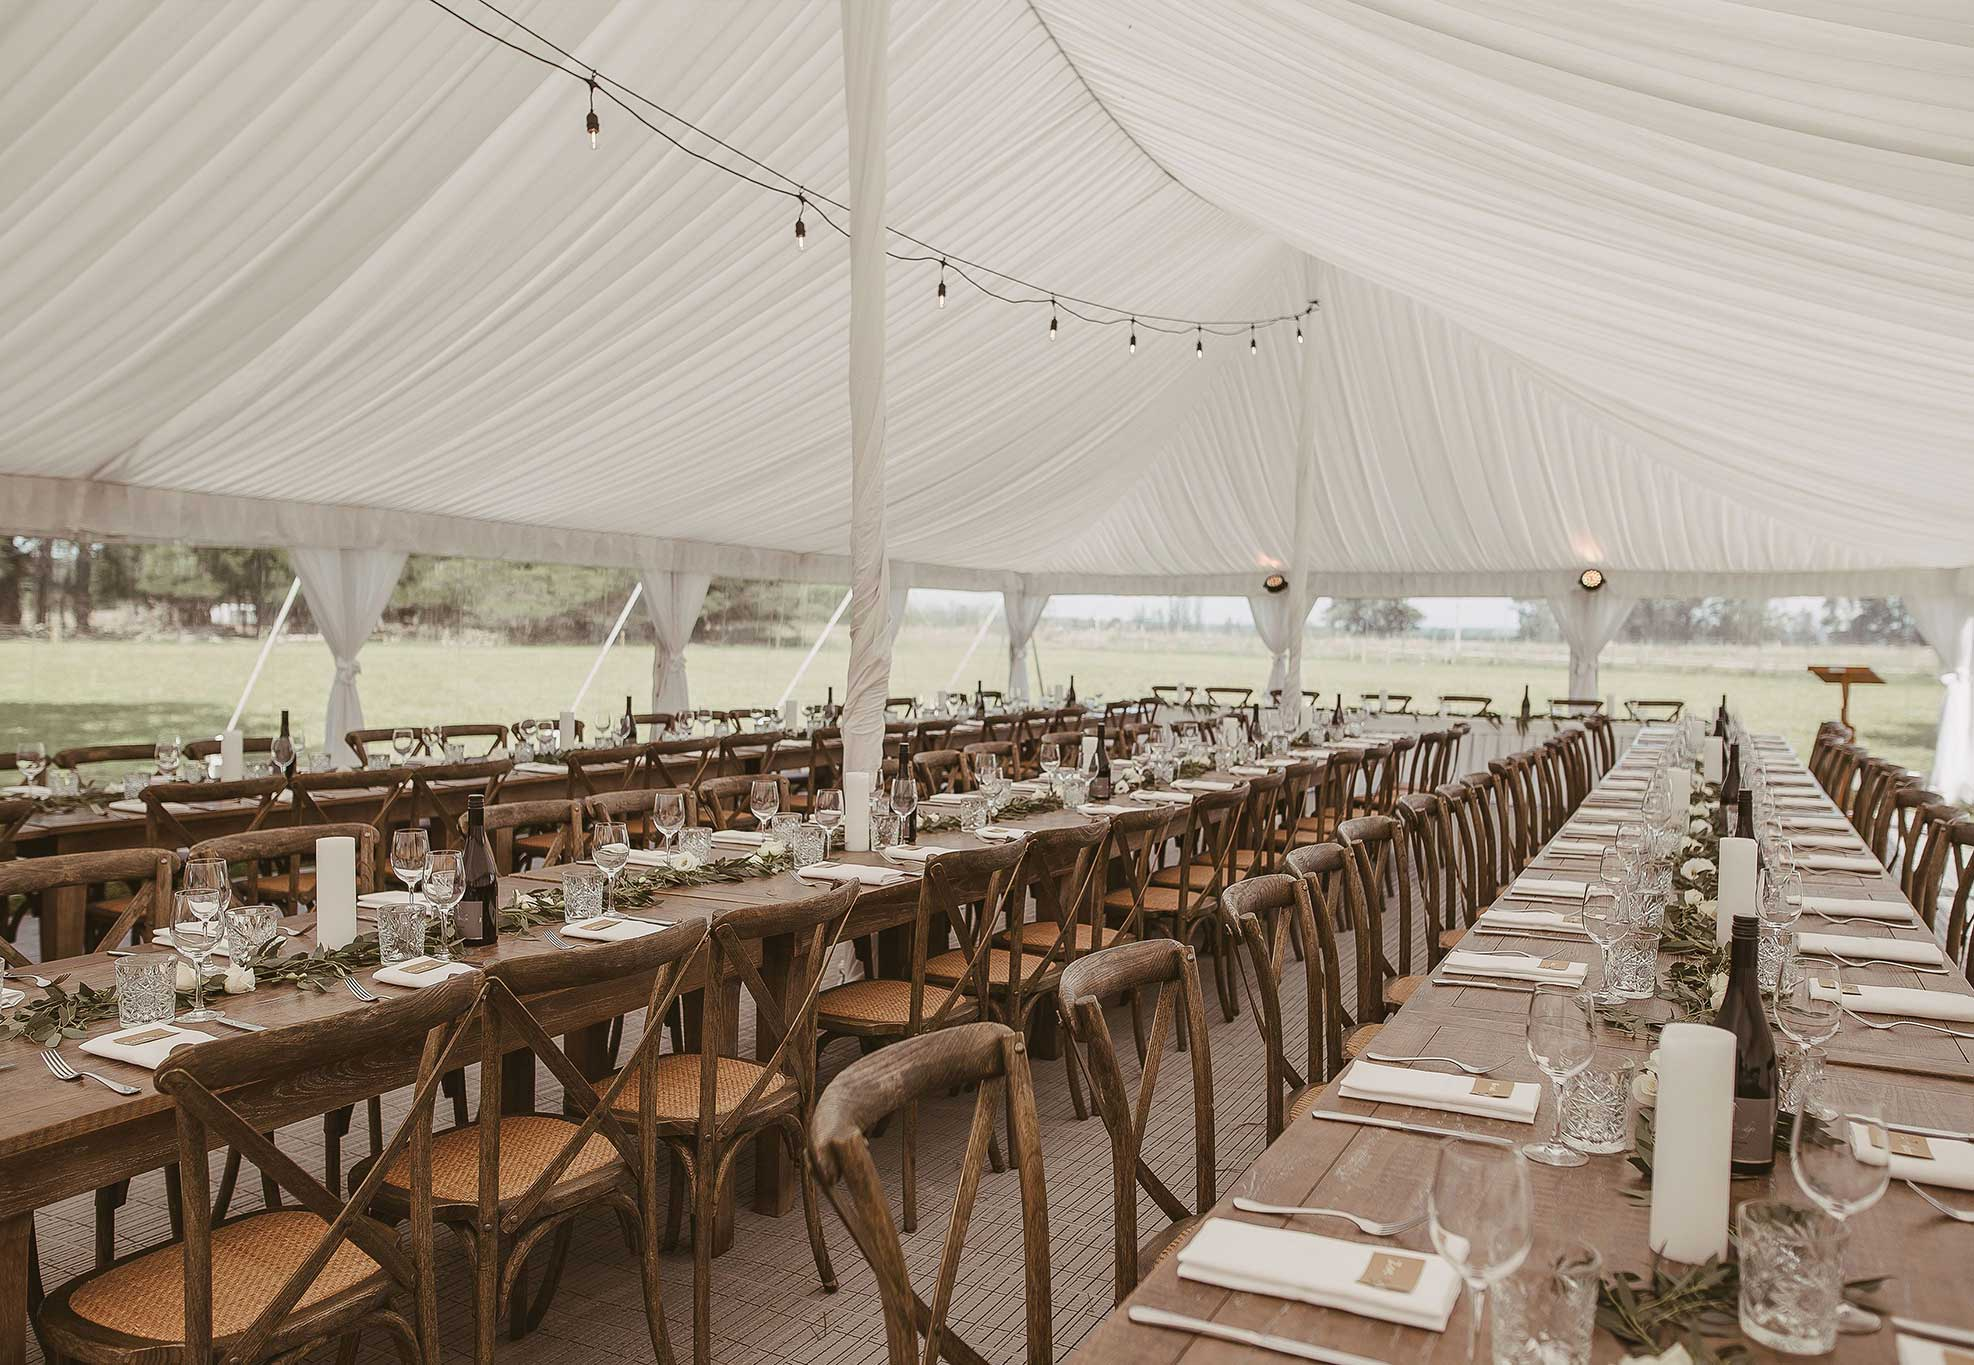 silk-estate-marquee-weddings-and-events-styling-and-hire-furniture-dinning-table-rustic-3